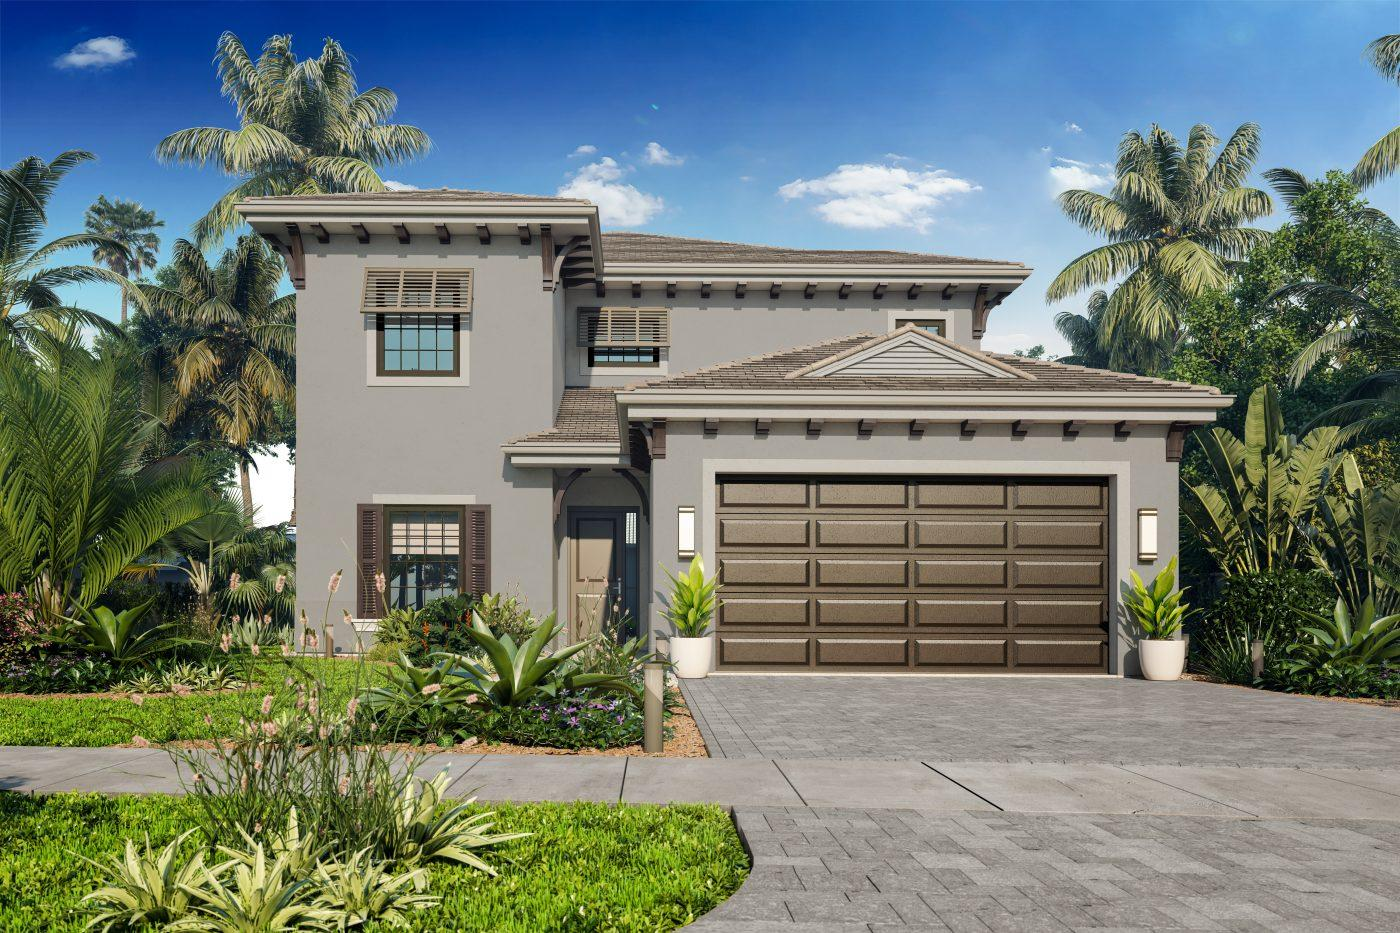 2848  Gin Berry Way  For Sale 10660546, FL